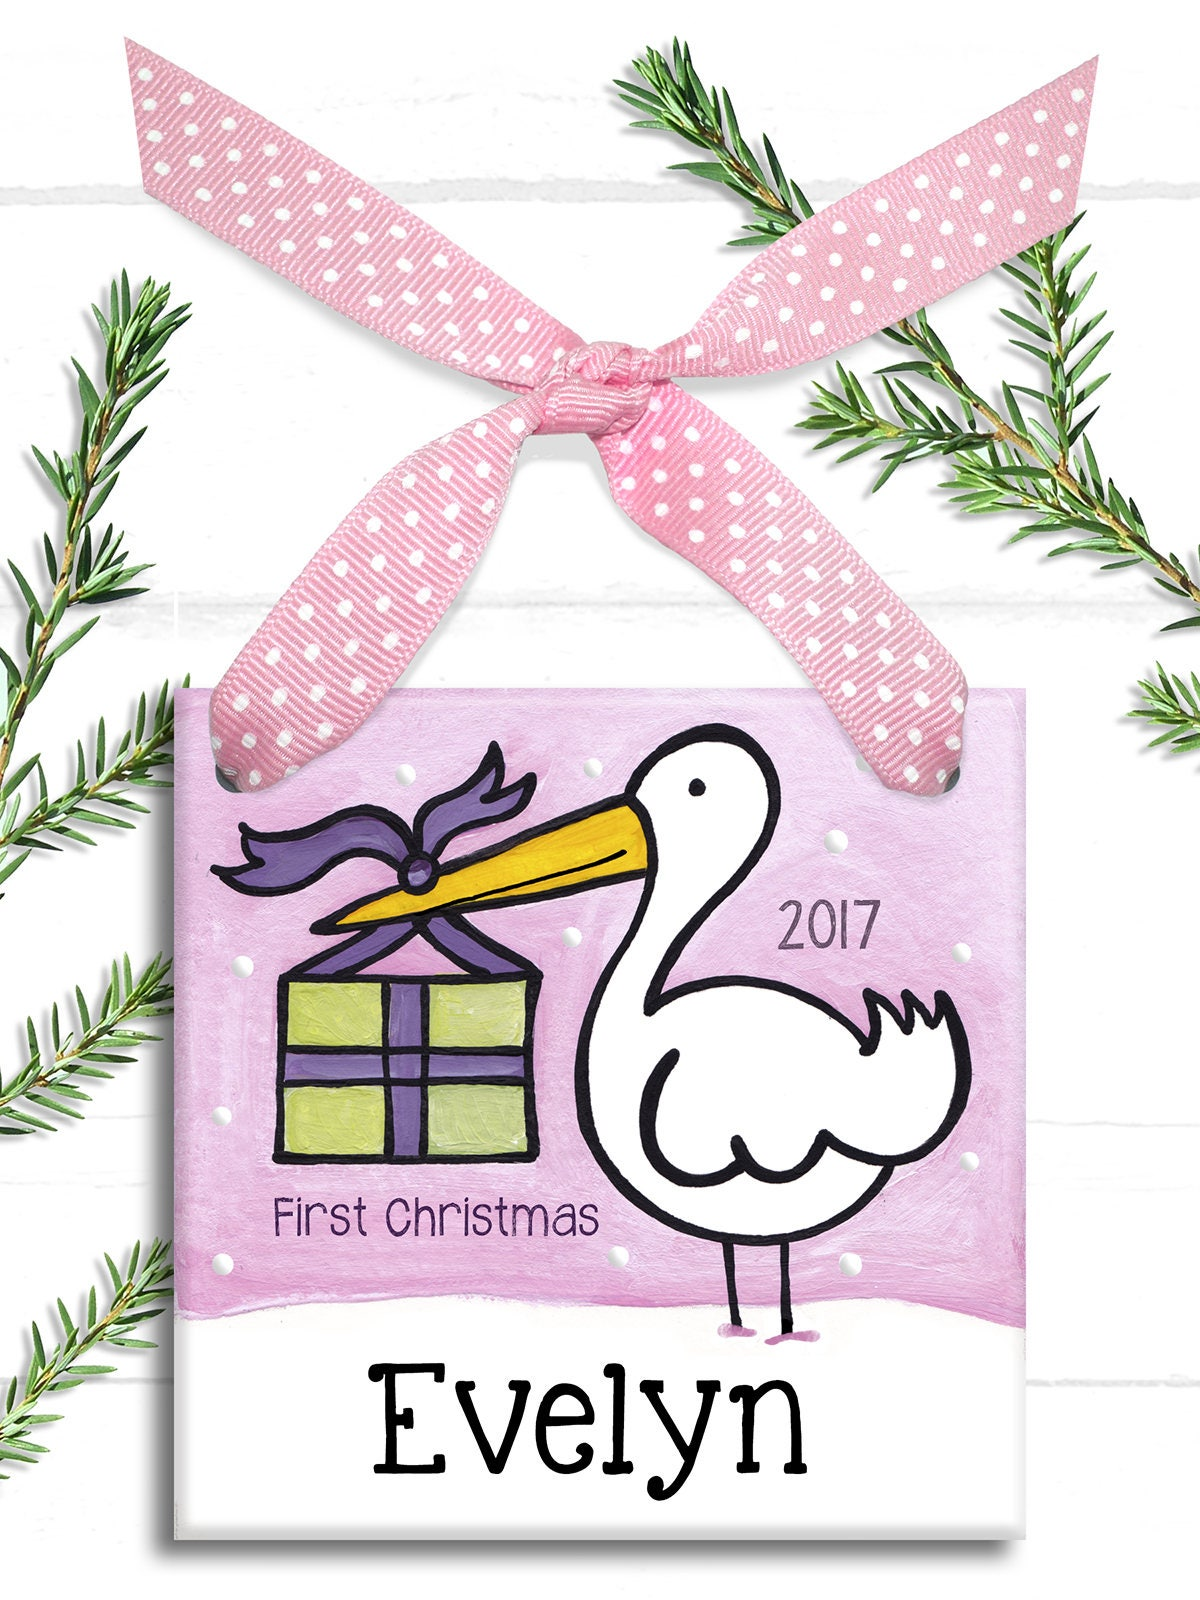 new baby ornament babys first christmas ornament stork baby ornament baby girl christmas first christmas ornament baby